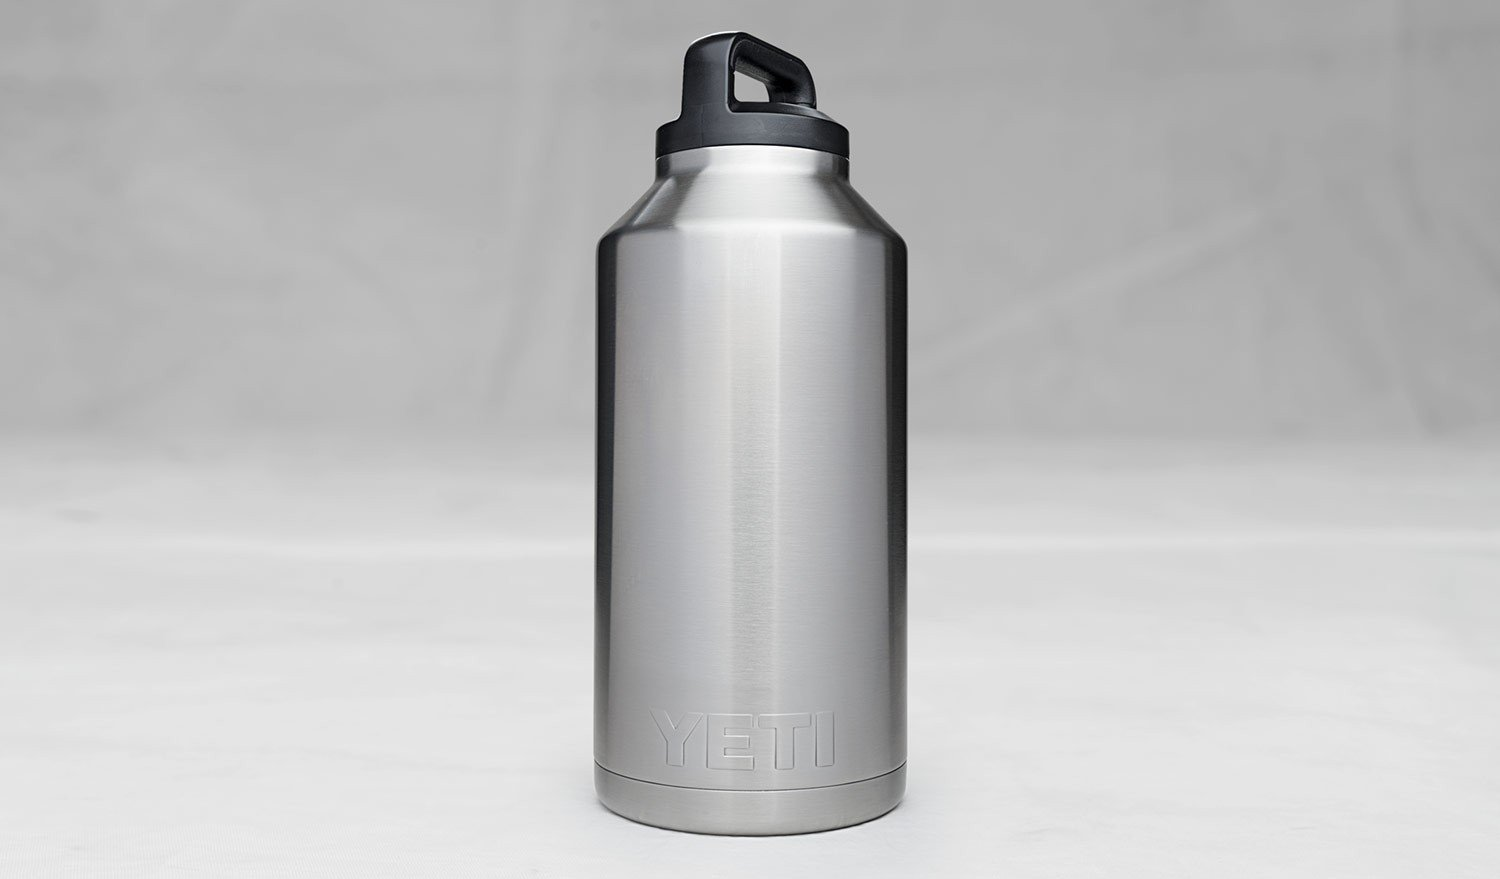 yeti-rambler-bottle-64-f_1-1500808122104